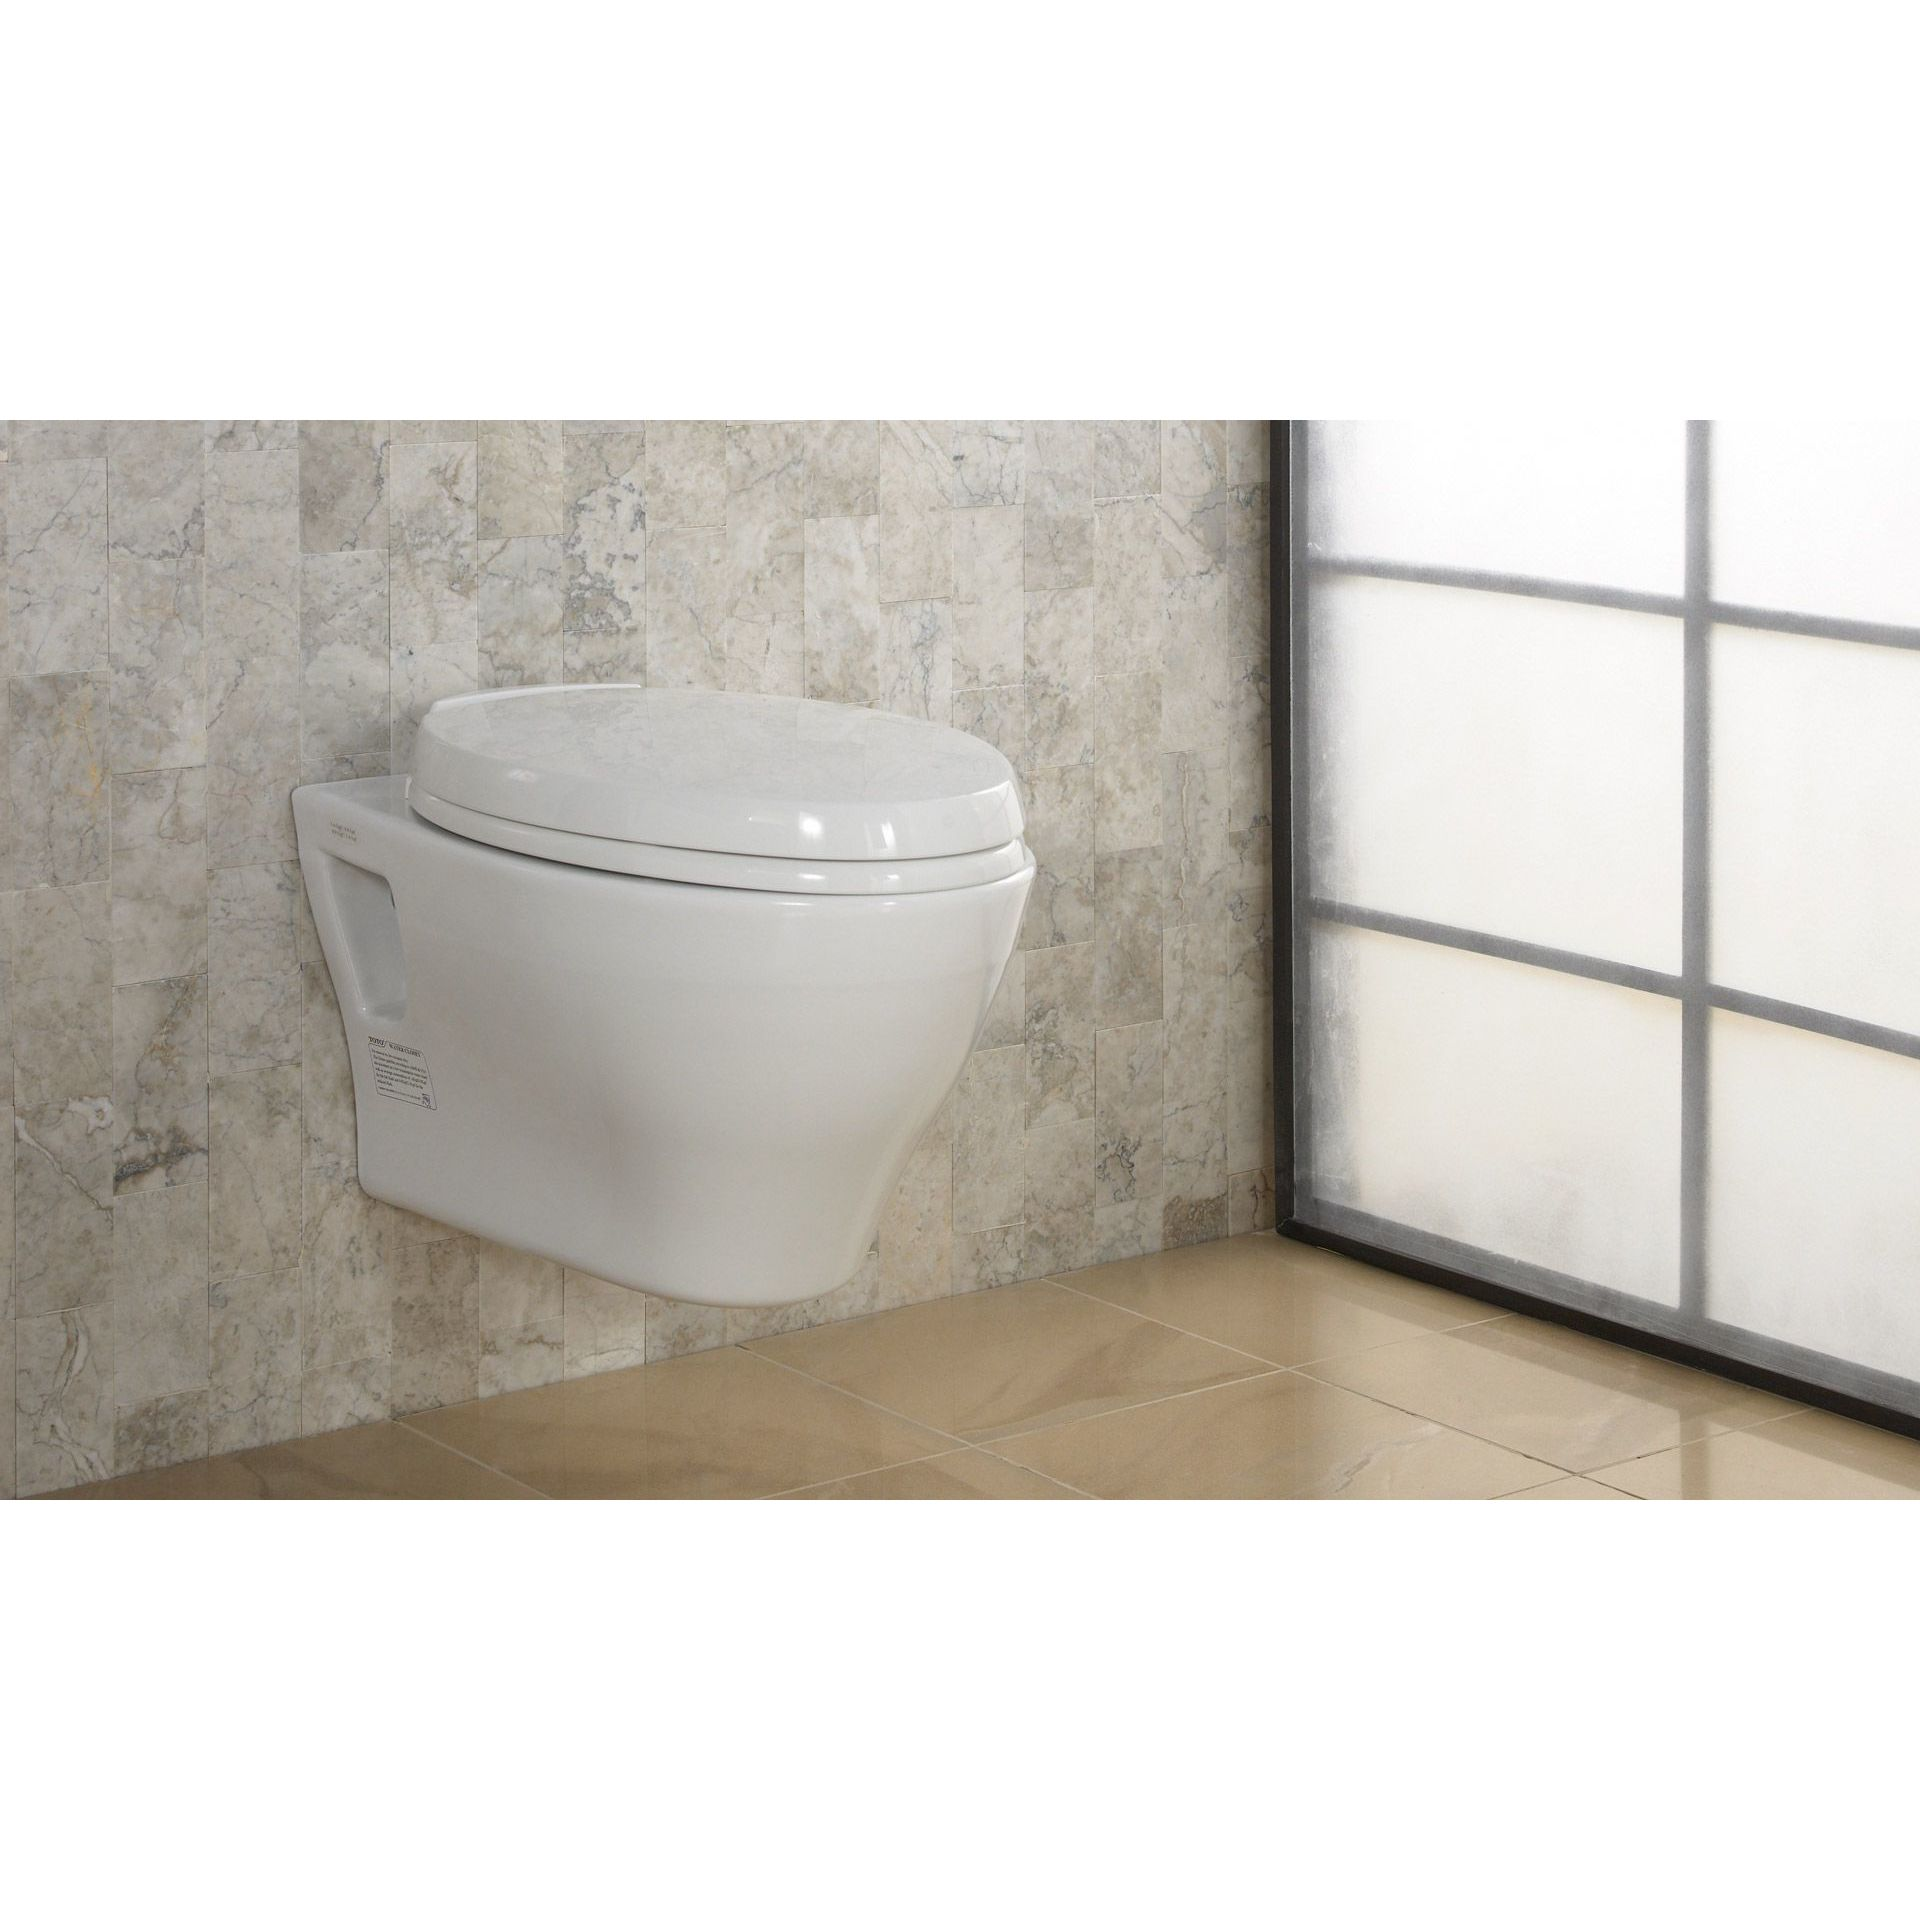 Toto CT418FG#01 Wall-hung Toilet Bowl - Free Shipping Today - Overstock.com  - 16050519